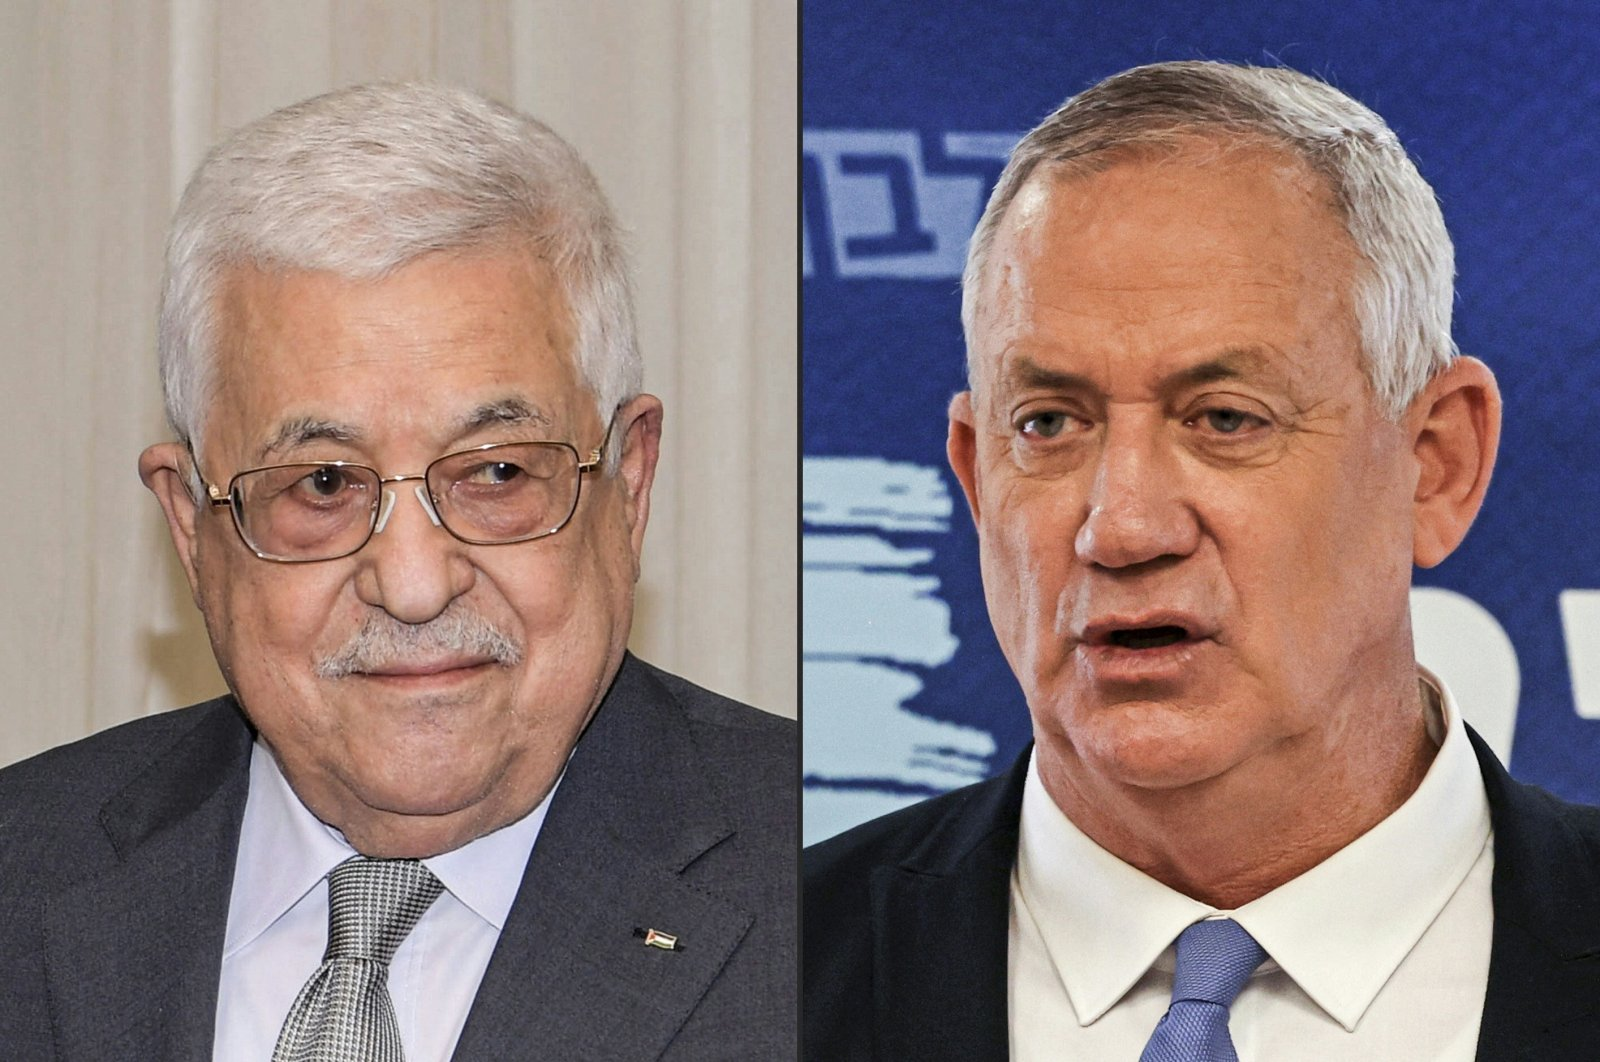 This combination of pictures created on Aug. 30, 2021, shows (L to R) Palestinian president Mahmud Abbas during a diplomatic meeting in Ramallah in a handout photo provided by the Palestinian Authority's press office (PPO) on Aug. 1, 2021, and Israeli Defence Minister Benny Gantz giving a press conference at his party's office in the Knesset in Jerusalem on June 7, 2021. (Photos by Thaer GHANAIM and Menahem KAHANA / AFP Photo / HO / PPO )